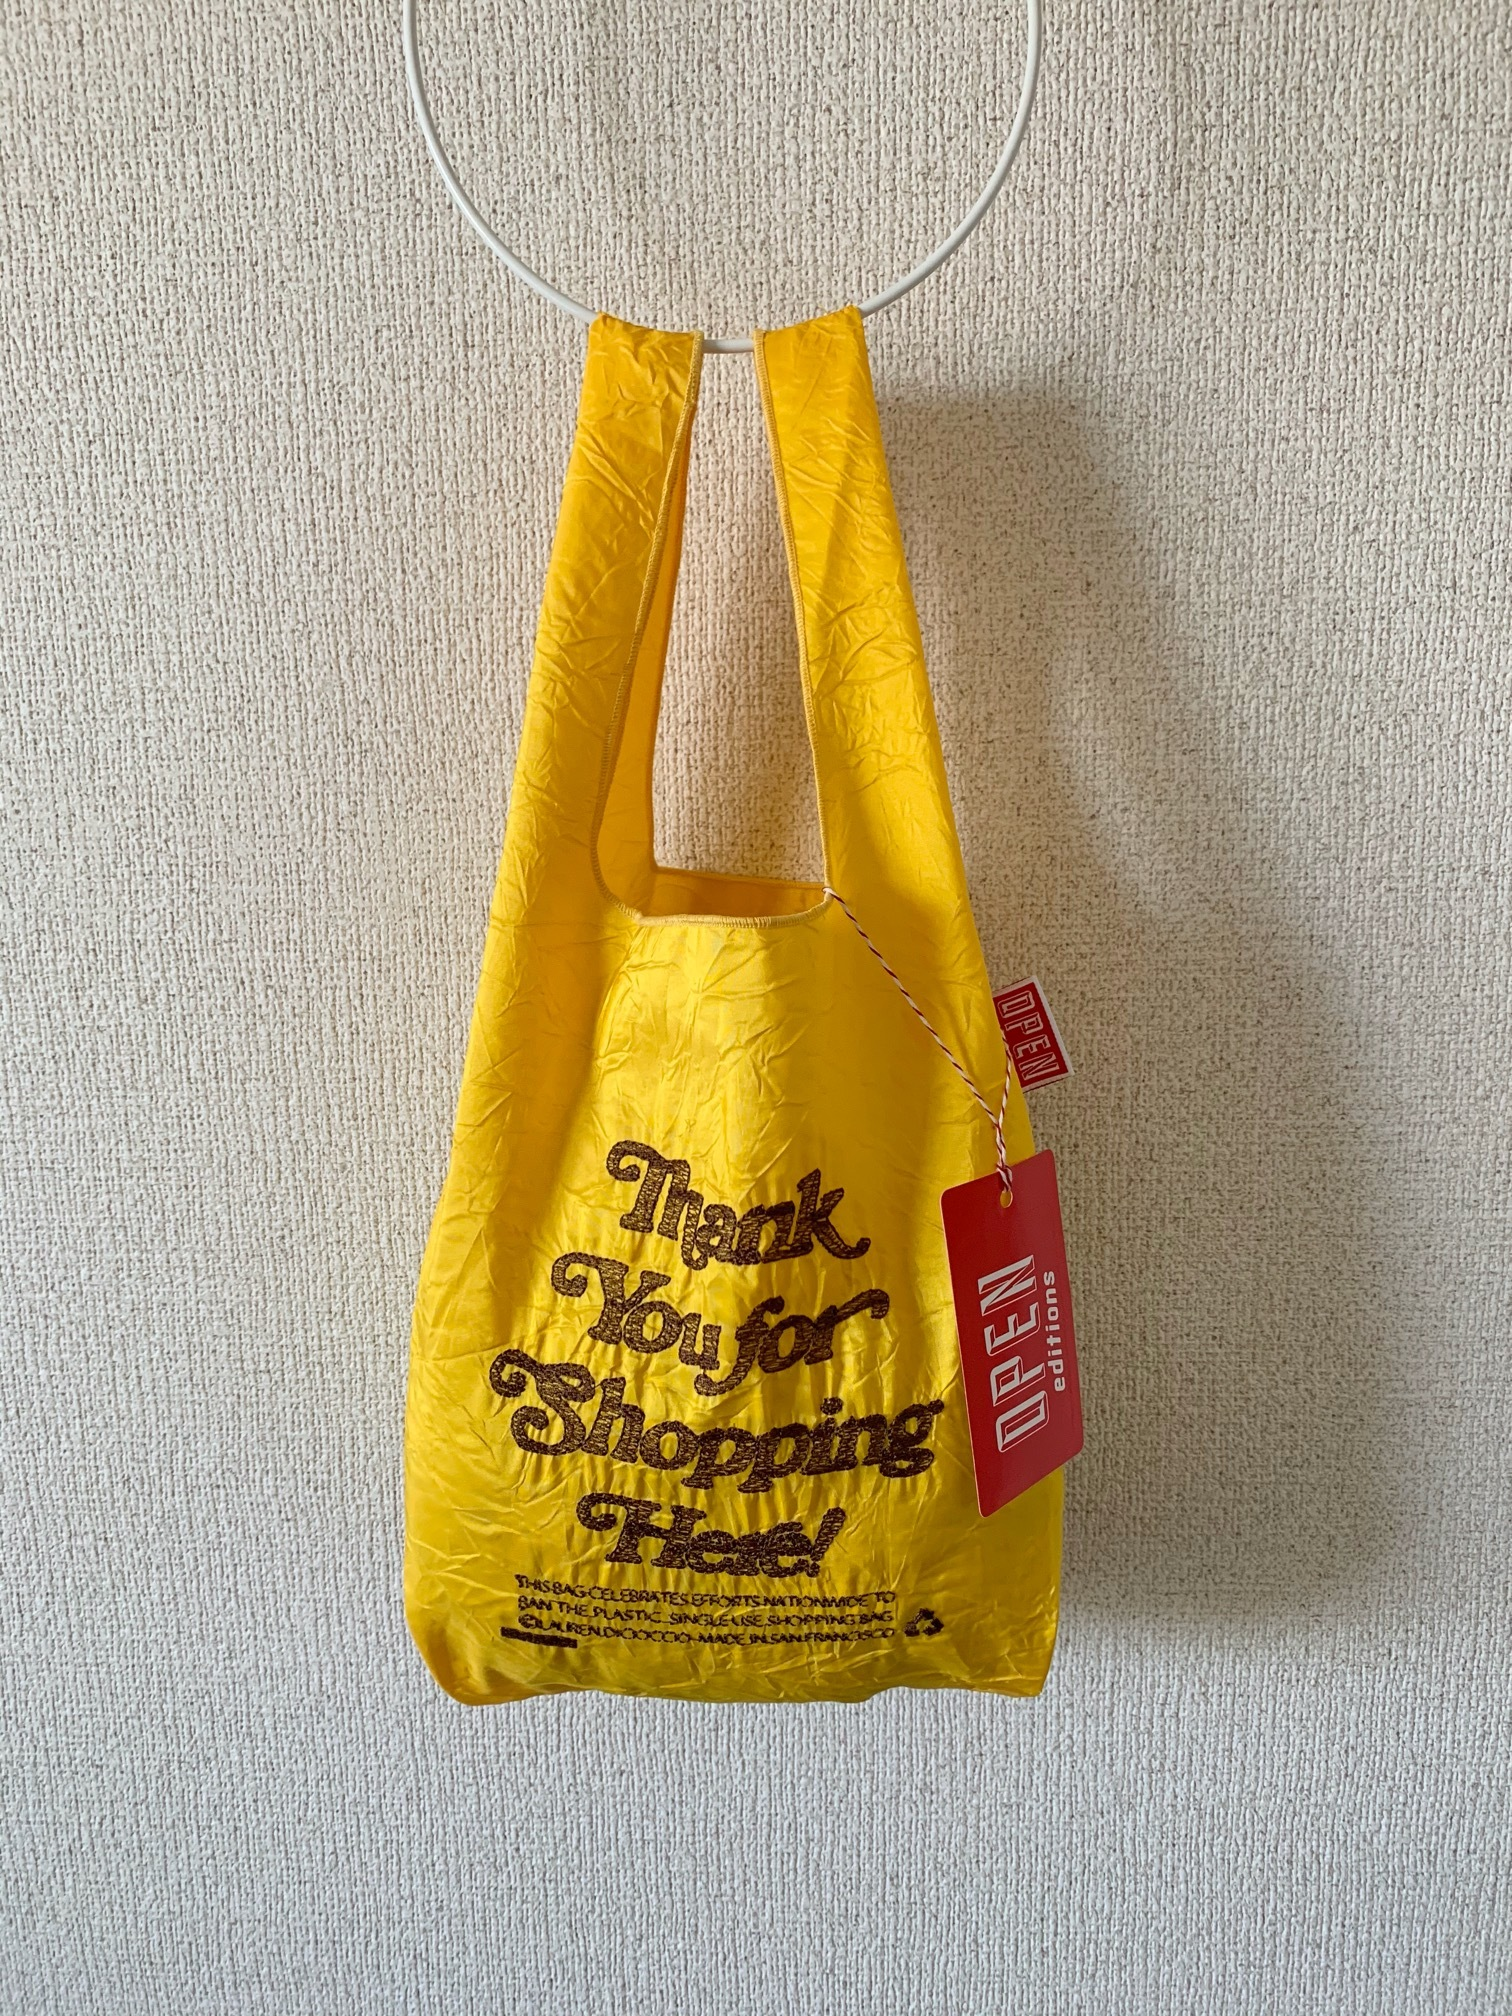 【OPEN EDITIONS】THANK YOU MINI エコバッグ/ THANK YOU FOR SHOPPING HERE Yellow